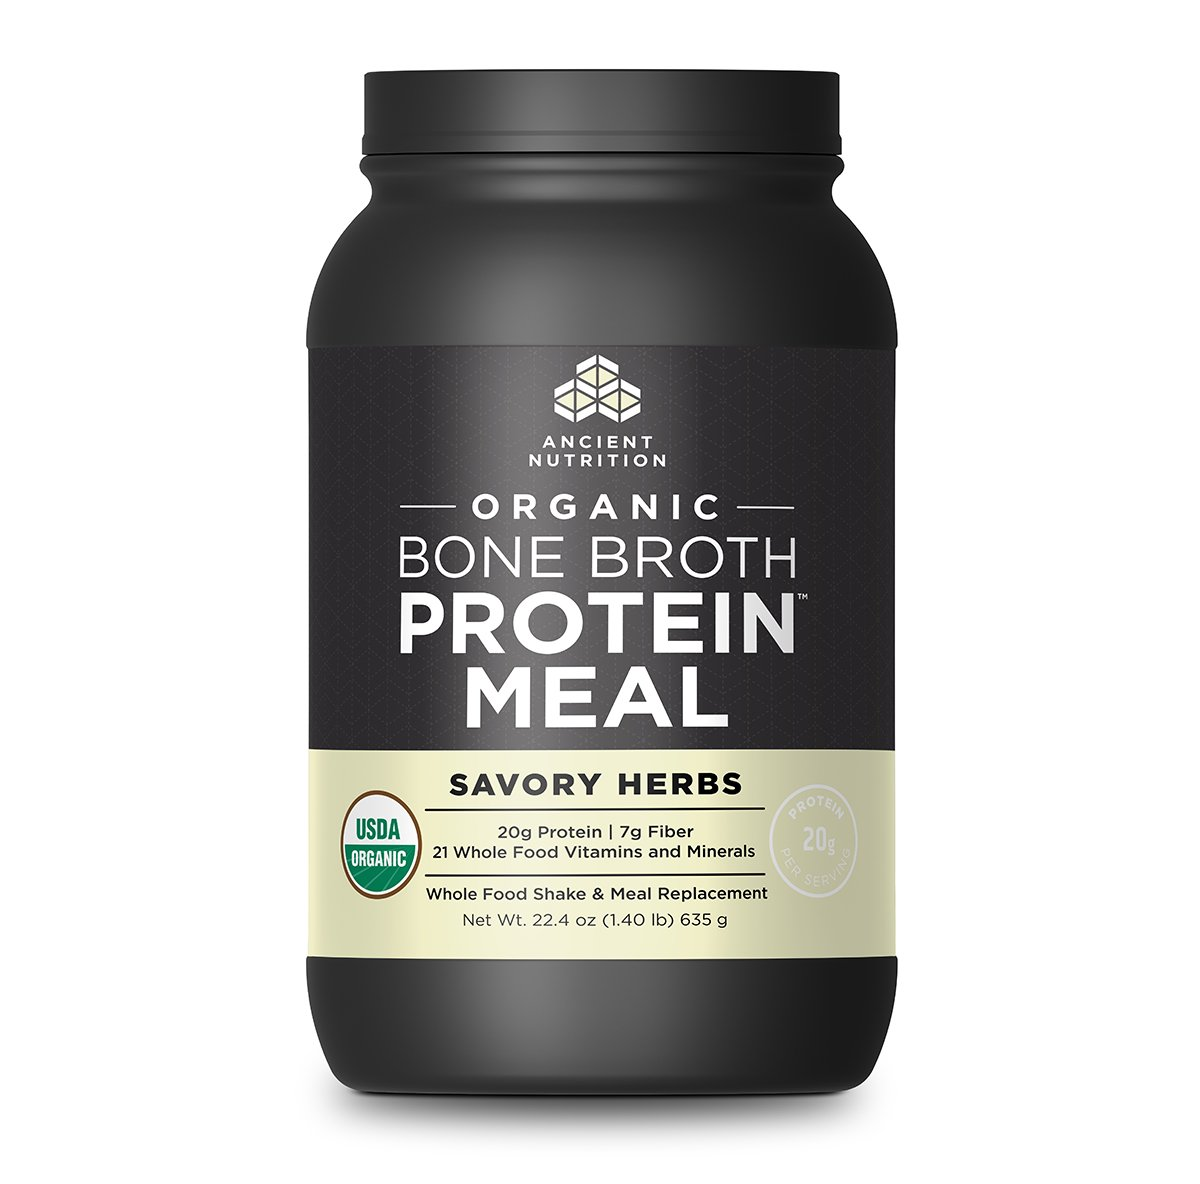 Ancient Nutrition Organic Bone Broth Protein Meal, Savory Herb Flavor, 15 Serving Size - Organic, Gut-Friendly, Paleo-Friendly, Protein Meal Replacement by Ancient Nutrition